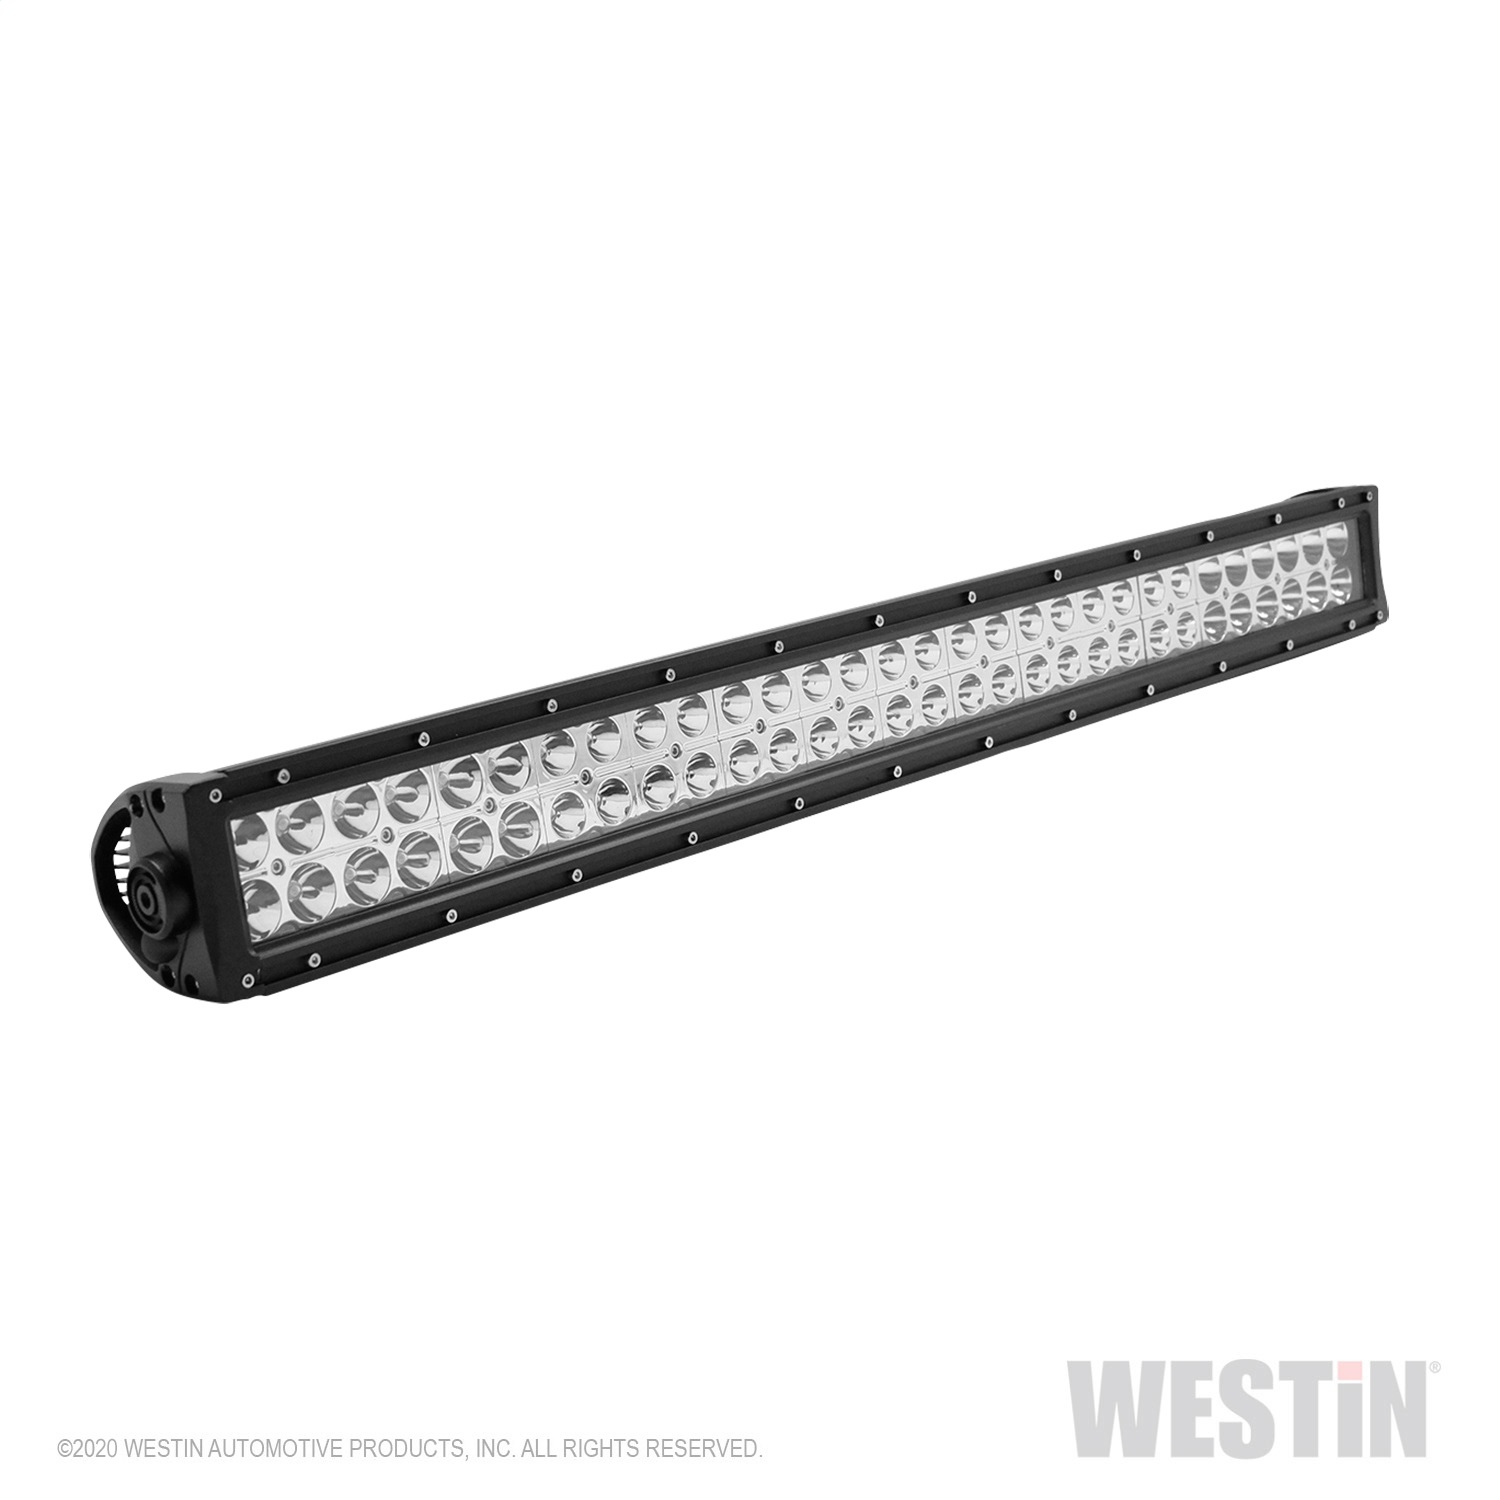 Westin 09-13230S EF2 LED Light Bar